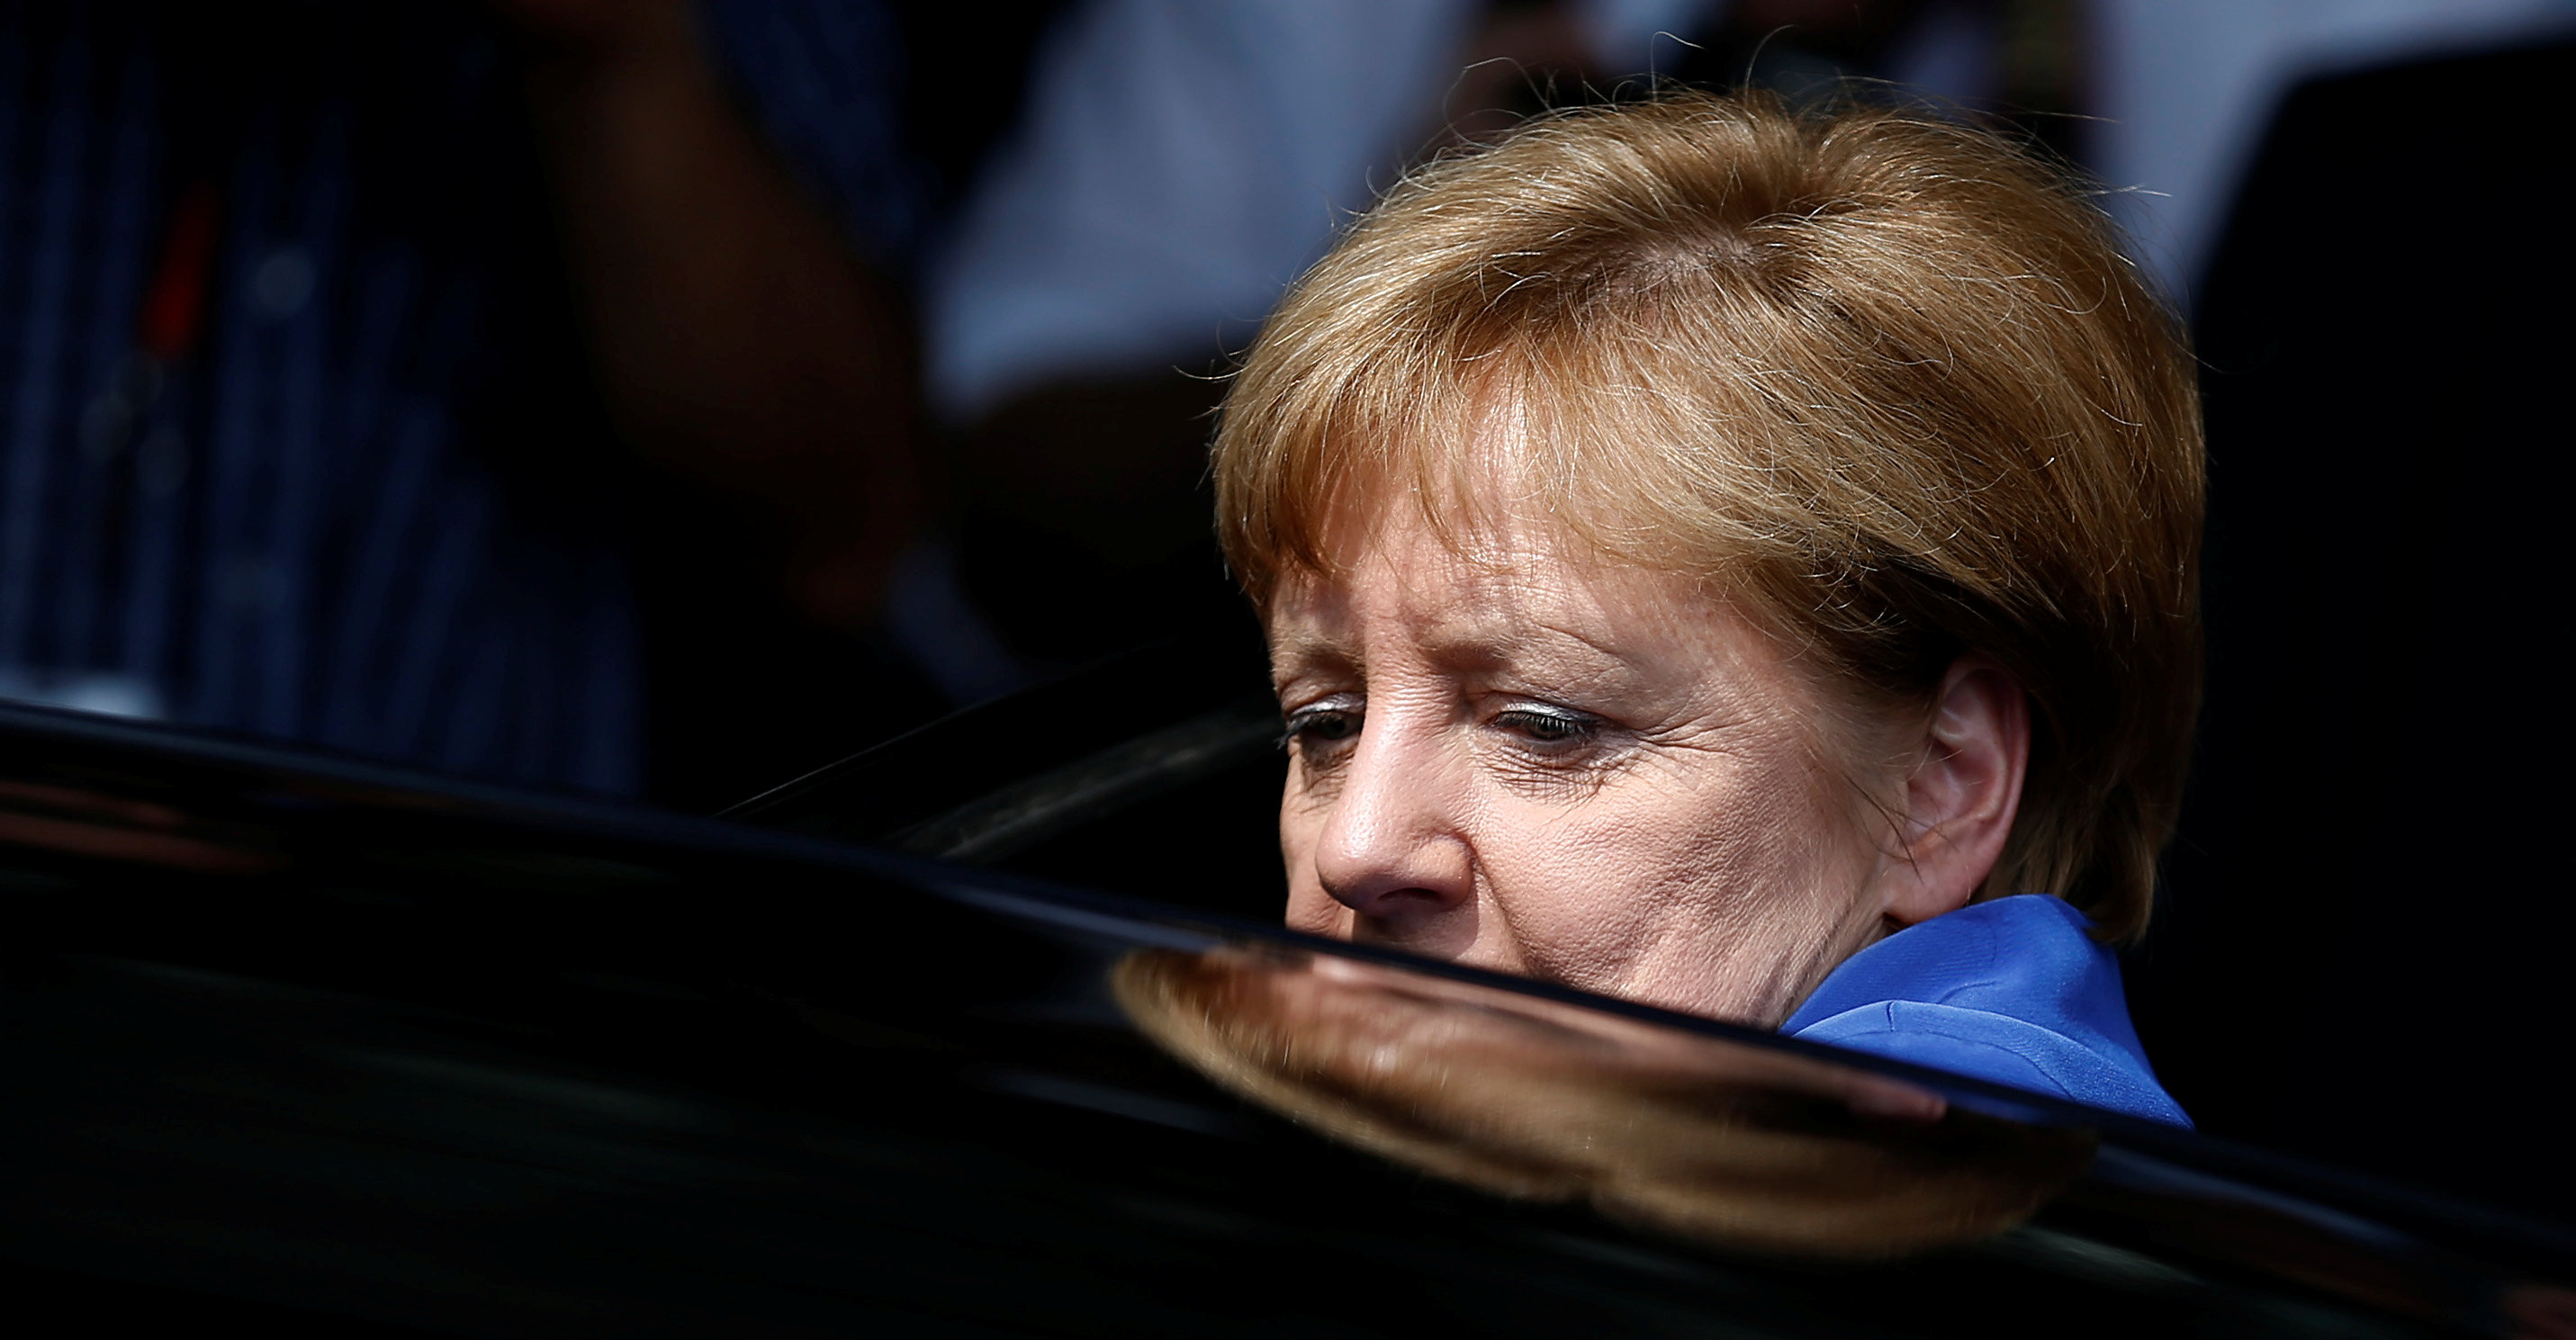 German Chancellor Merkel leaves a news conference in Berlin